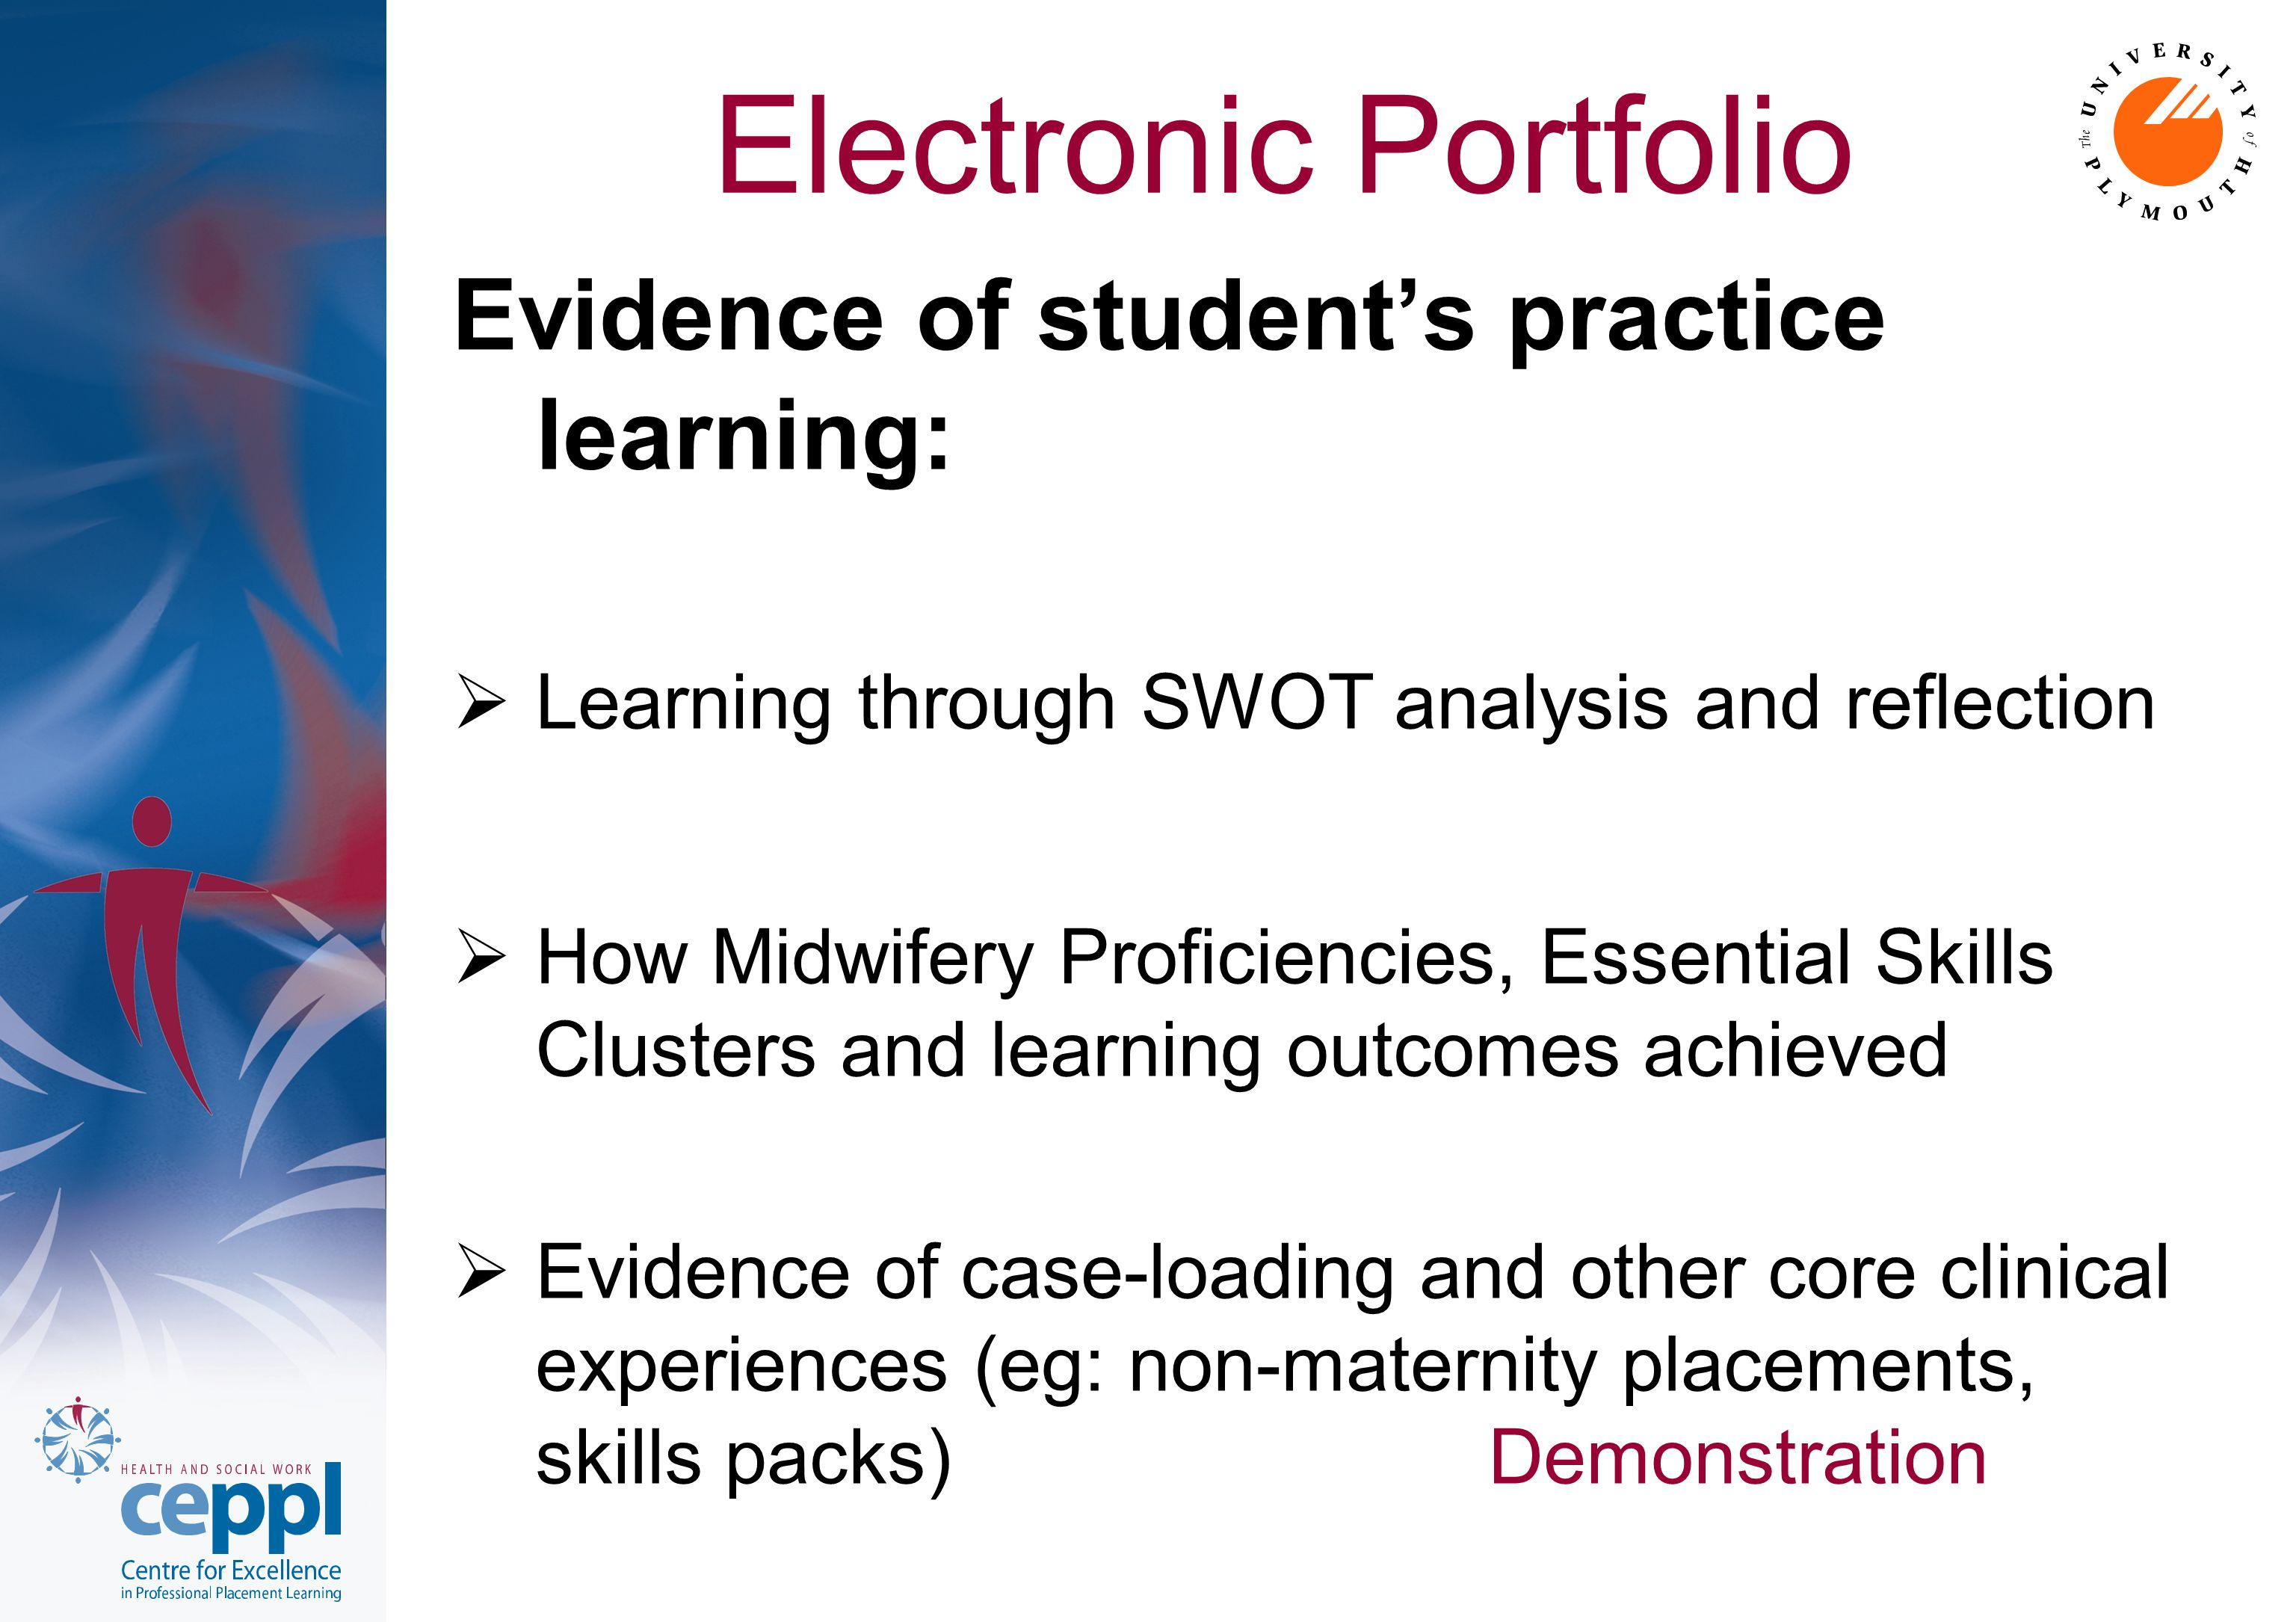 Electronic Portfolio Evidence of student's practice learning:  Learning through SWOT analysis and reflection  How Midwifery Proficiencies, Essential Skills Clusters and learning outcomes achieved  Evidence of case-loading and other core clinical experiences (eg: non-maternity placements, skills packs) Demonstration